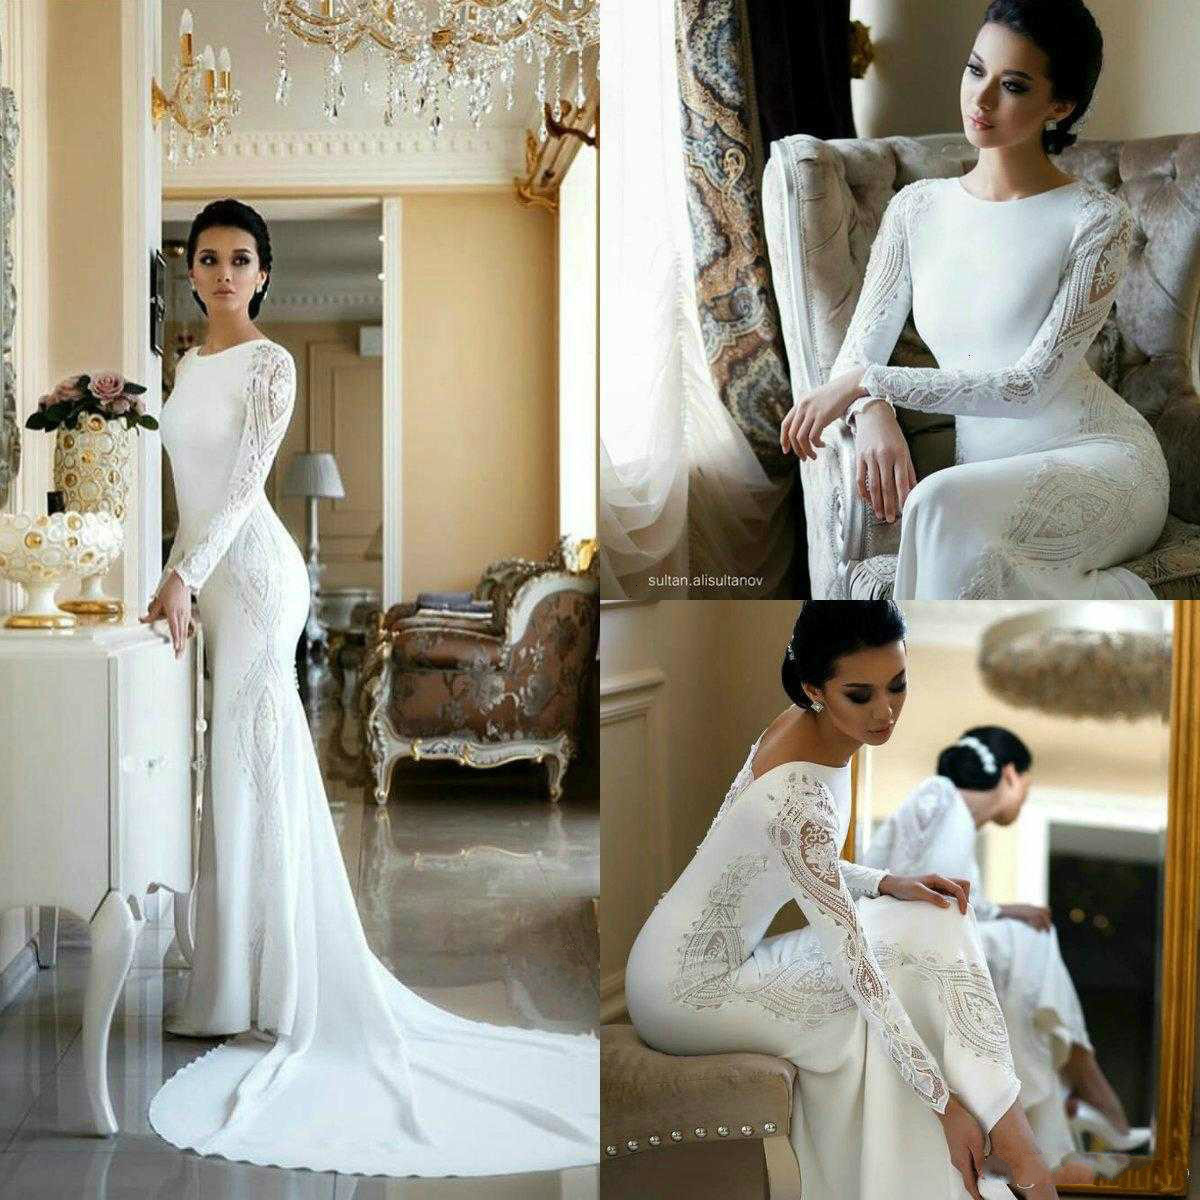 2020 Wedding Dresses Lace Appliqued Beaded Berta Sweep Train Boho Wedding Dress Bridal Gowns Plus Size Sleeves Abiti Da Sposa